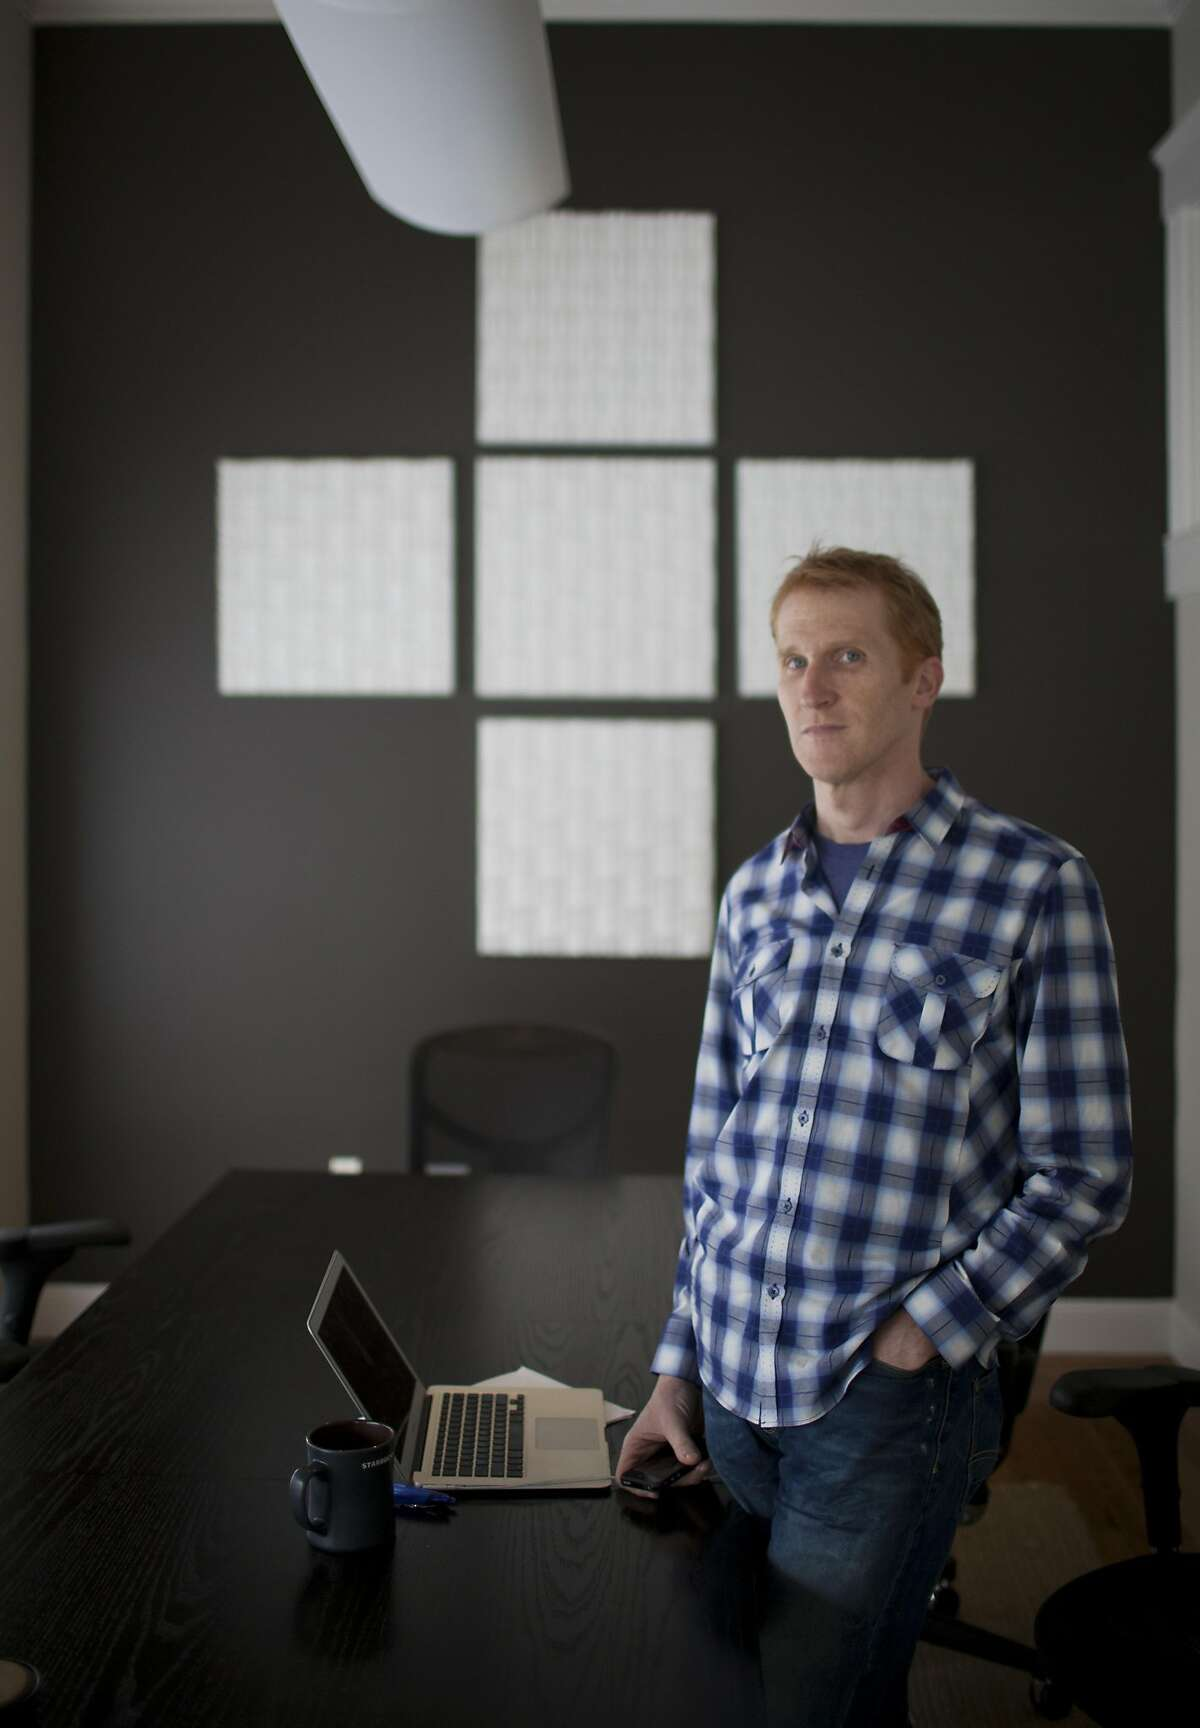 FILE � The venture capitalist Steve Anderson at his office in San Francisco, April 12, 2012. With Dropbox and Spotify successfully going public, tech investors believe that a bonanza of initial public offerings is finally about to arrive. (Peter DaSilva/The New York Times)